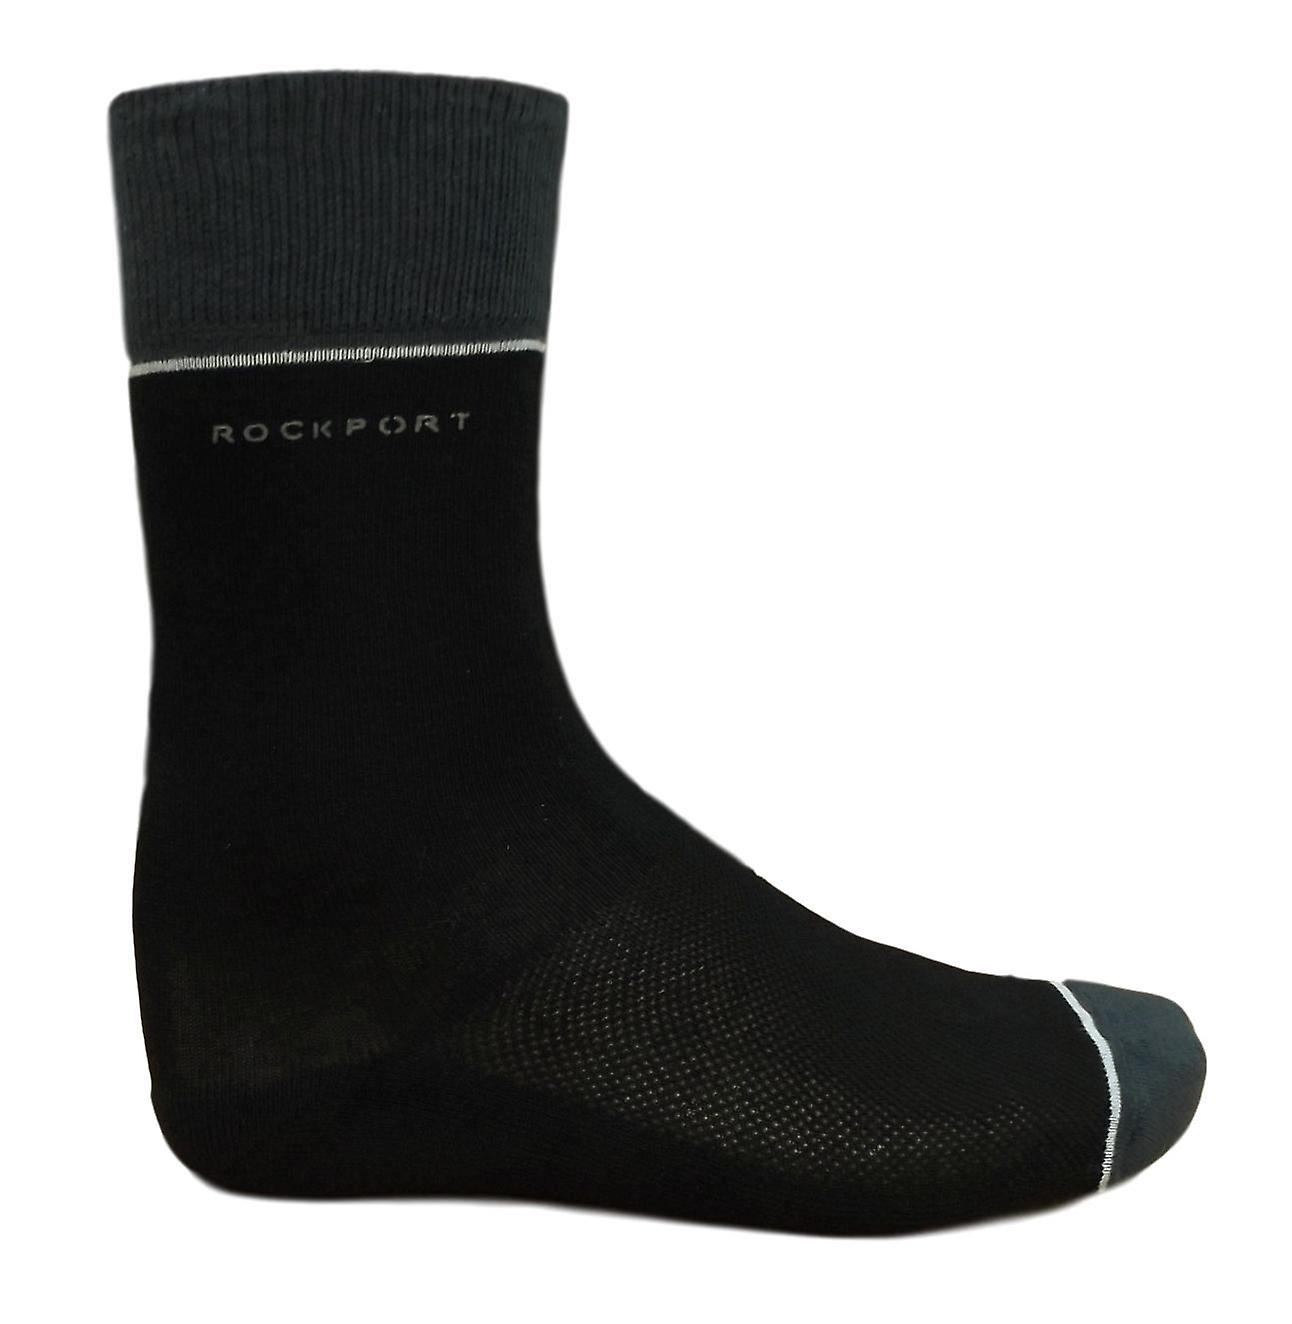 Rockport Men's Comfort Sole Pack of 2 Pairs of Socks